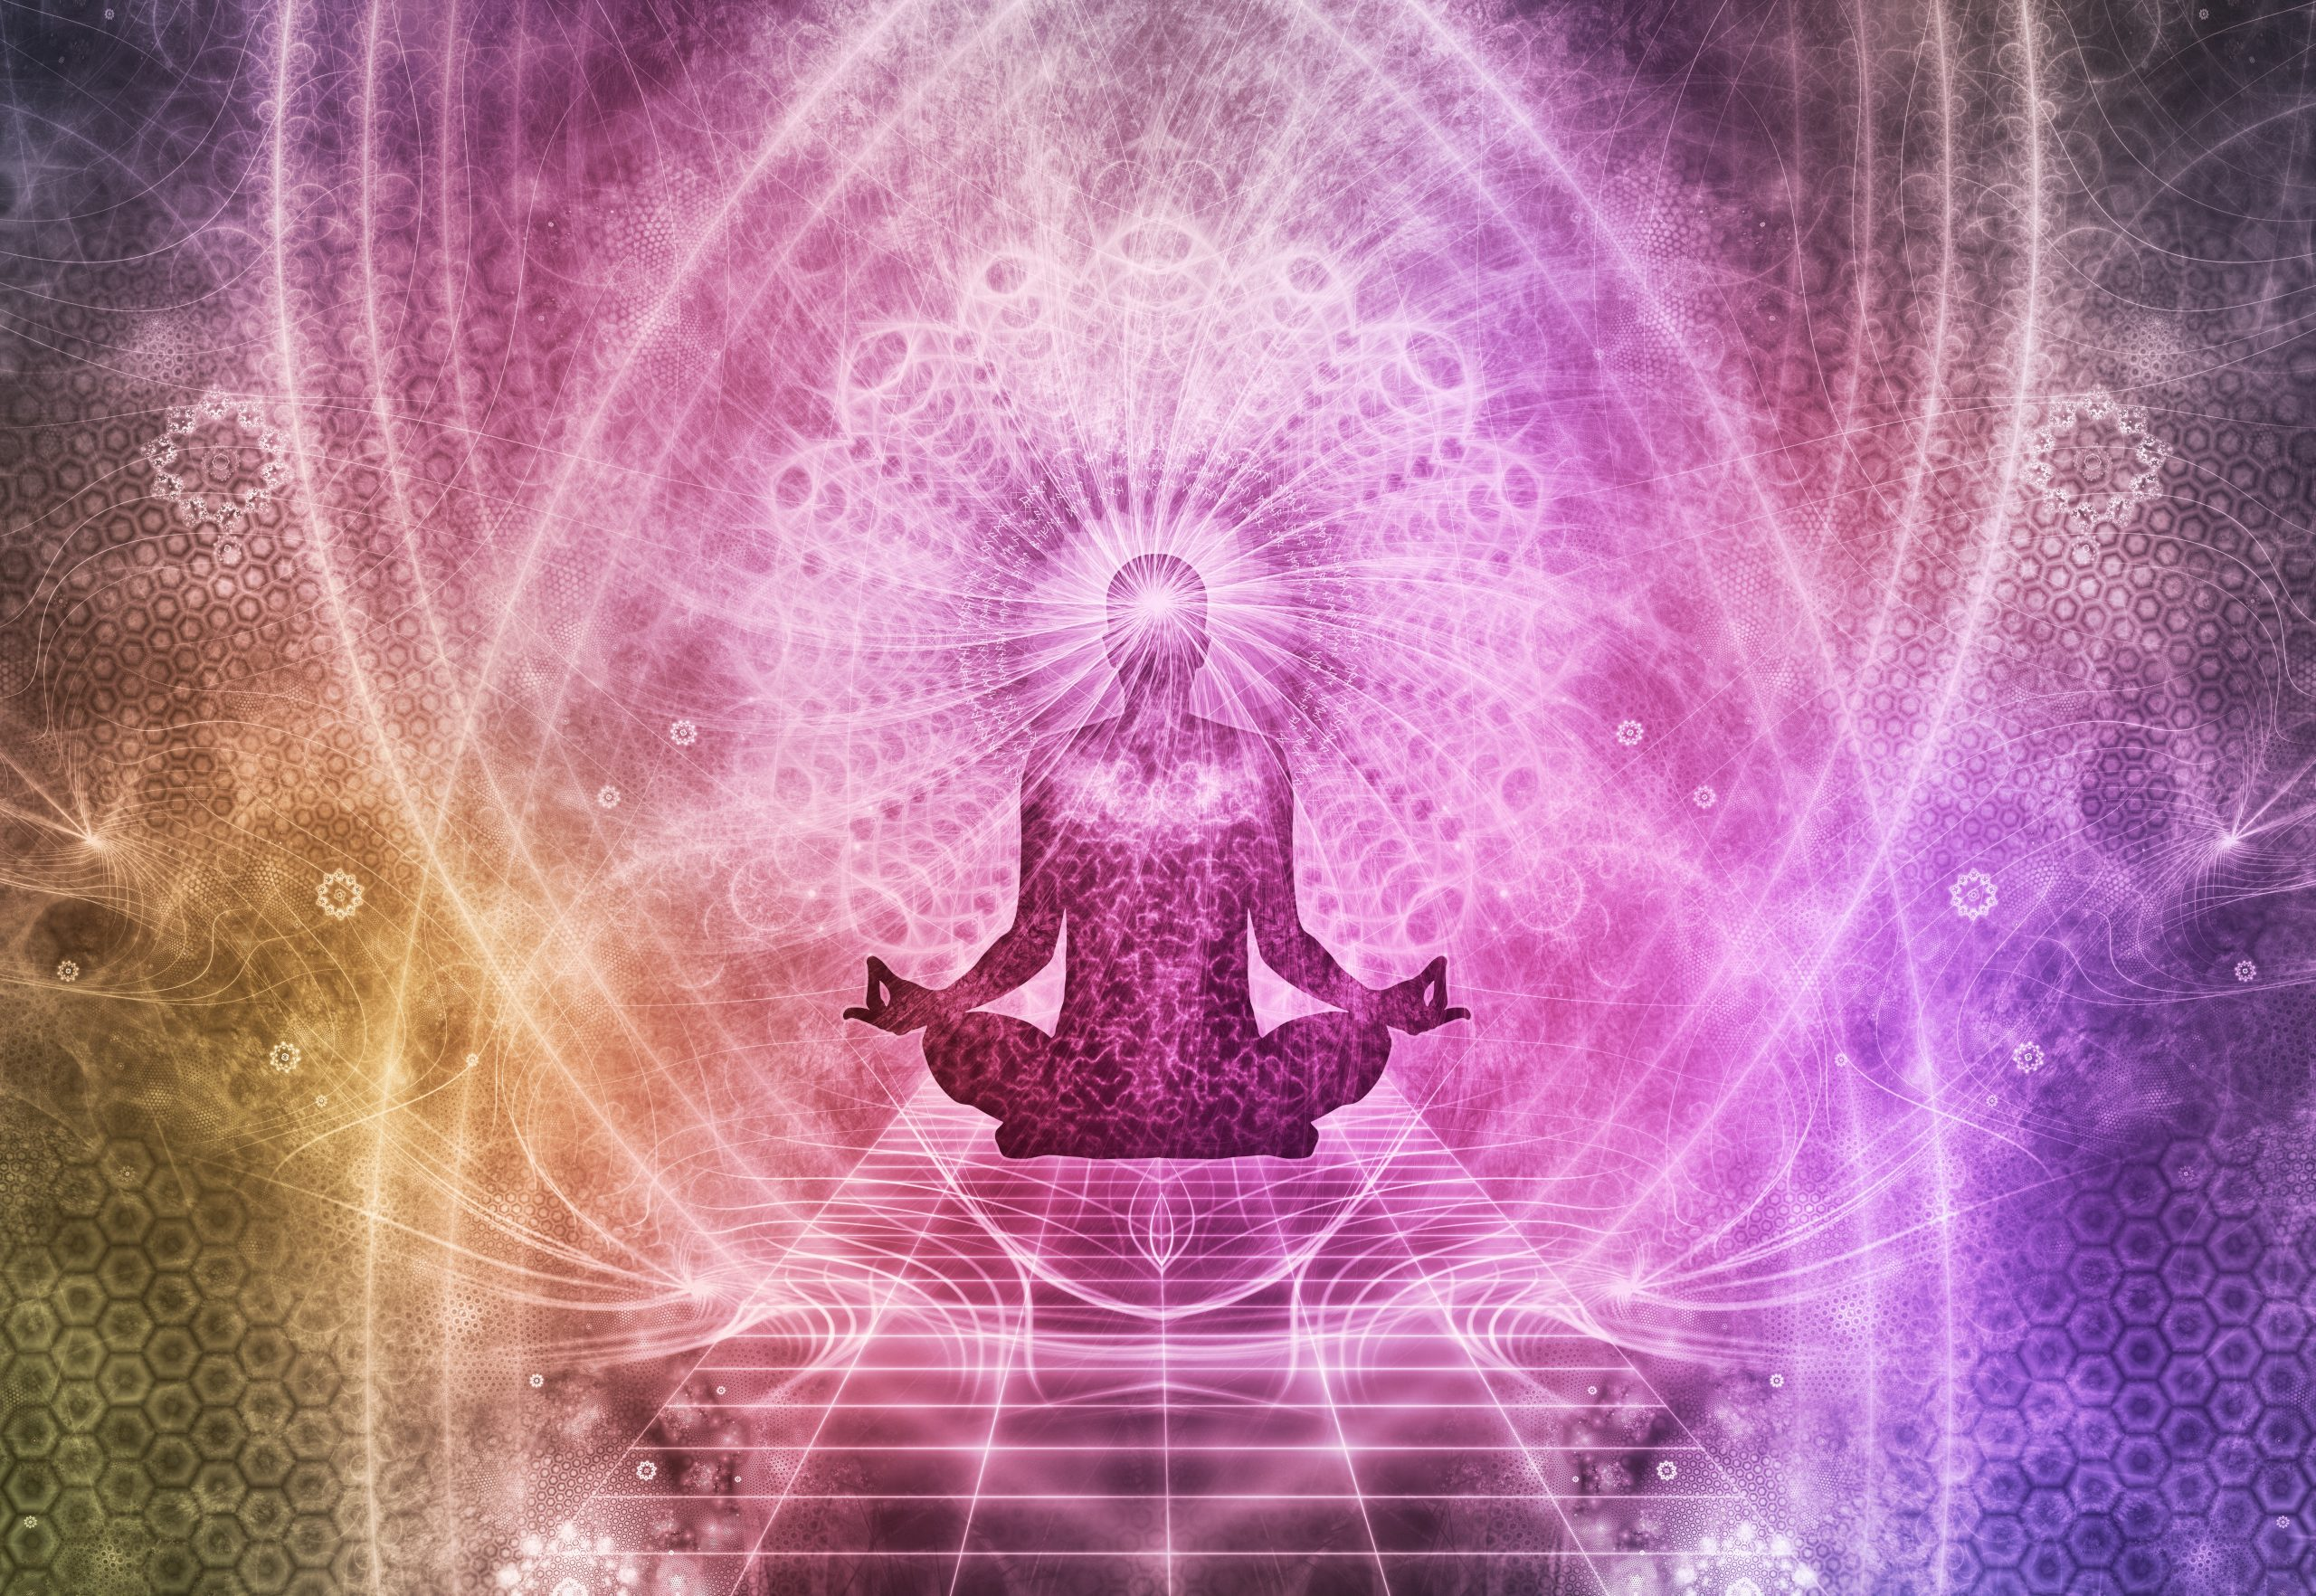 law of attraction quotes,law of attraction meditation,law of attraction affirmations law of attraction quotes How to Start Visualization for Better Health law of attraction meditation scaled